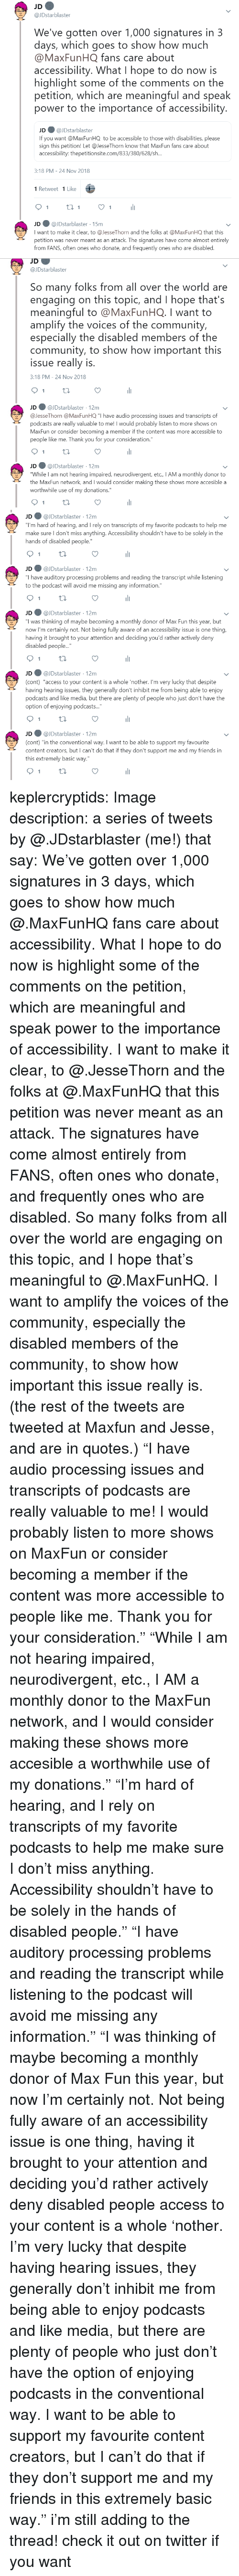 "Community, Friends, and Target: JDstarblaster  We've gotten over 1,000 signatures in 3  days, which goes to show how much  @MaxFunHQ fans care about  accessibility. What I hope to do now is  highlight some of the comments on the  petition, which are meaningful and speak  power to the importance of accessibility  JD ● @lDstarblaster  If you want @MaxFunHQ to be accessible to those with disabilities, please  sign this petition! Let @JesseThorn know that MaxFun fans care about  accessibility: thepetitionsite.com/833/380/628/s...  3:18 PM-24 Nov 2018  1 Retweet 1 Like  JD @JDstarblaster 15m  I want to make it clear, to @JesseThorn and the folks at @MaxFunHQ that this  petition was never meant as an attack. The signatures have come almost entirely  from FANS, often ones who donate, and frequently ones who are disabled.   JD  @JDstarblaster  So many folks from all over the world are  engaging on this topic, and I hope that's  meaningful to @MaxFunHQ. I want to  amplify the voices of the community,  especially the disabled members of the  community, to show how important this  issue really is  3:18 PM-24 Nov 2018  JD ● @JDstarblaster· 12m  @lesseThorn @MaxFun HQ ""I have audio processing issues and transcripts of  о,  dcasts are really valuable to me! I would probably listen to more shows on  MaxFun or consider becoming a member if the content was more accessible to  people like me. Thank you for your consideration.""  JD@JDstarblaster 12m  While I am not hearing impaired, neurodivergent, etc., IAM a monthly donor to  the MaxFun network, and I would consider making these shows more accesible a  worthwhile use of my donations.""   JD@JDstarblaster 12m  ou""I'm hard of hearing, and I rely on transcripts of my favorite podcasts to help me  make sure I don't miss anything. Accessibility shouldn't have to be solely in the  hands of disabled people  JD@JDstarblaster 12m  have auditory processing problems and reading the transcript while listening  to the podcast will avoid me missing any information.""  JD@JDstarblaster 12m  was thinking of maybe becoming a monthly donor of Max Fun this year, but  now I'm certainly not. Not being fully aware of an accessibility issue is one thing  having it brought to your attention and deciding you'd rather actively deny  disabled people...""  JD@JDstarblaster 12m  (cont) ""access to your content is a whole 'nother. I'm very lucky that despite  having hearing issues, they generally don't inhibit me from being able to enjoy  podcasts and like media, but there are plenty of people who just don't have the  option of enjoying podcasts...  JD@JDstarblaster 12m  cont) ""in the conventional way. I want to be able to support my favourite  content creators, but I can't do that if they don't support me and my friends in  this extremely basic way."" keplercryptids: Image description: a series of tweets by @.JDstarblaster (me!) that say: We've gotten over 1,000 signatures in 3 days, which goes to show how much @.MaxFunHQ fans care about accessibility. What I hope to do now is highlight some of the comments on the petition, which are meaningful and speak power to the importance of accessibility. I want to make it clear, to @.JesseThorn and the folks at @.MaxFunHQ that this petition was never meant as an attack. The signatures have come almost entirely from FANS, often ones who donate, and frequently ones who are disabled. So many folks from all over the world are engaging on this topic, and I hope that's meaningful to @.MaxFunHQ. I want to amplify the voices of the community, especially the disabled members of the community, to show how important this issue really is. (the rest of the tweets are tweeted at Maxfun and Jesse, and are in quotes.) ""I have audio processing issues and transcripts of podcasts are really valuable to me! I would probably listen to more shows on MaxFun or consider becoming a member if the content was more accessible to people like me. Thank you for your consideration."" ""While I am not hearing impaired, neurodivergent, etc., I AM a monthly donor to the MaxFun network, and I would consider making these shows more accesible a worthwhile use of my donations."" ""I'm hard of hearing, and I rely on transcripts of my favorite podcasts to help me make sure I don't miss anything. Accessibility shouldn't have to be solely in the hands of disabled people."" ""I have auditory processing problems and reading the transcript while listening to the podcast will avoid me missing any information."" ""I was thinking of maybe becoming a monthly donor of Max Fun this year, but now I'm certainly not. Not being fully aware of an accessibility issue is one thing, having it brought to your attention and deciding you'd rather actively deny disabled people access to your content is a whole 'nother. I'm very lucky that despite having hearing issues, they generally don't inhibit me from being able to enjoy podcasts and like media, but there are plenty of people who just don't have the option of enjoying podcasts in the conventional way. I want to be able to support my favourite content creators, but I can't do that if they don't support me and my friends in this extremely basic way."" i'm still adding to the thread! check it out on twitter if you want"